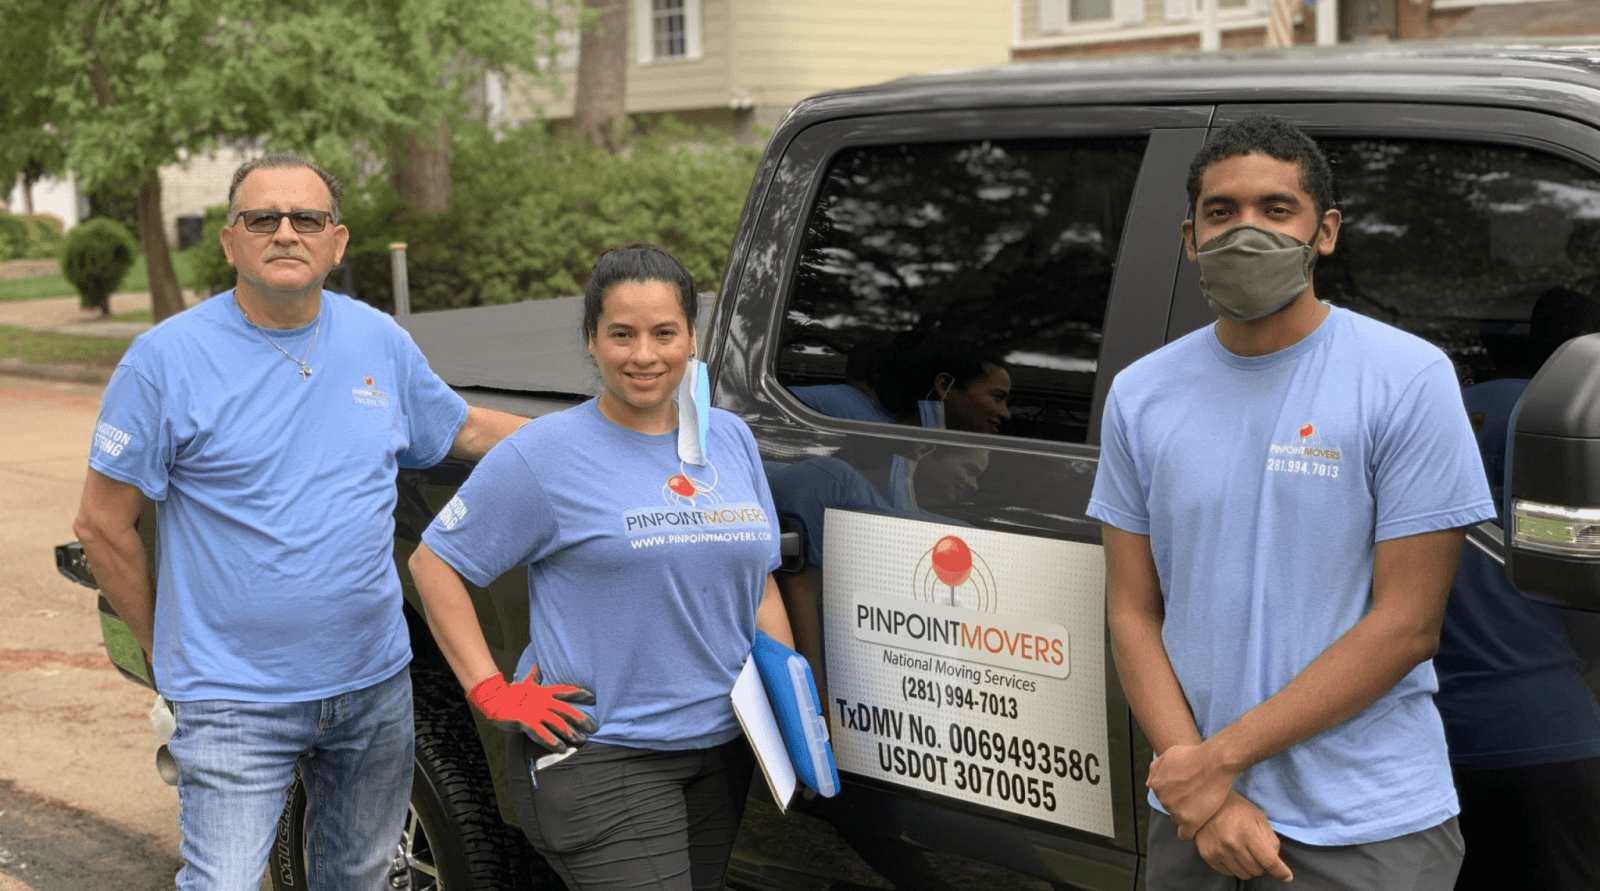 About Pinpoint Movers